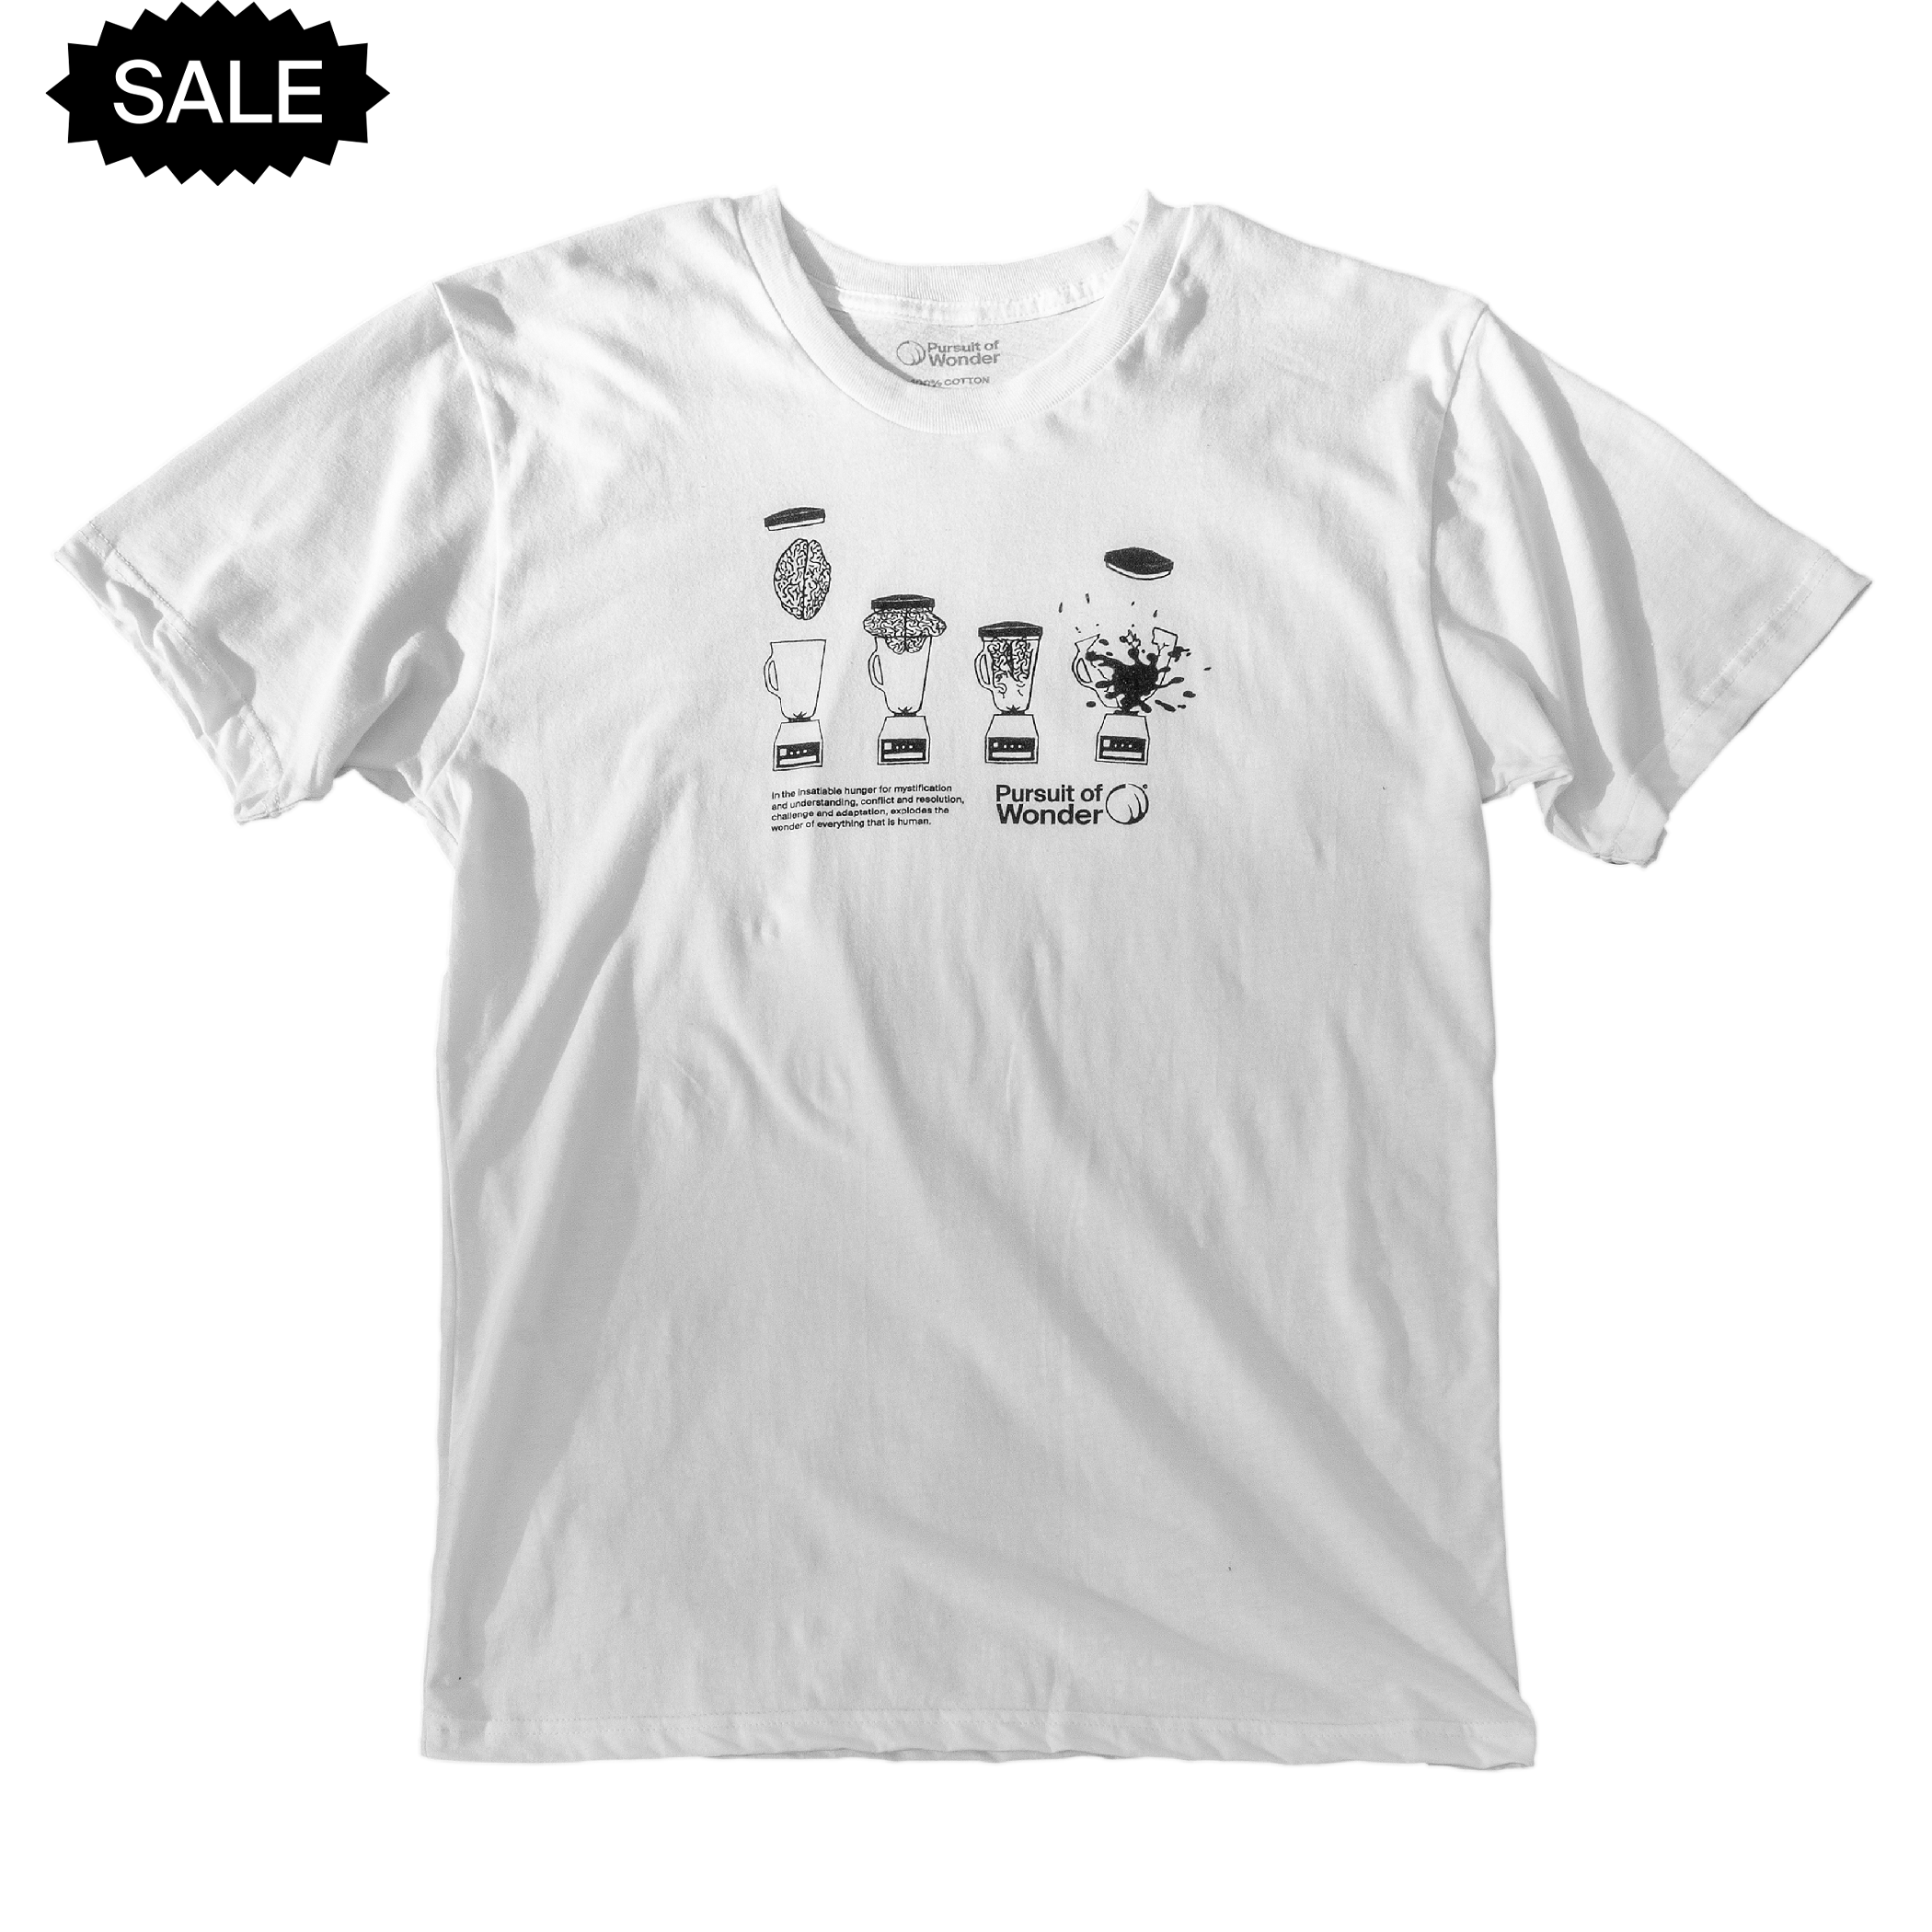 Short sleeve shirt featuring a sequence from the classic exploding brain blender outro animation, as well as an original quote and the Pursuit of Wonder logo.